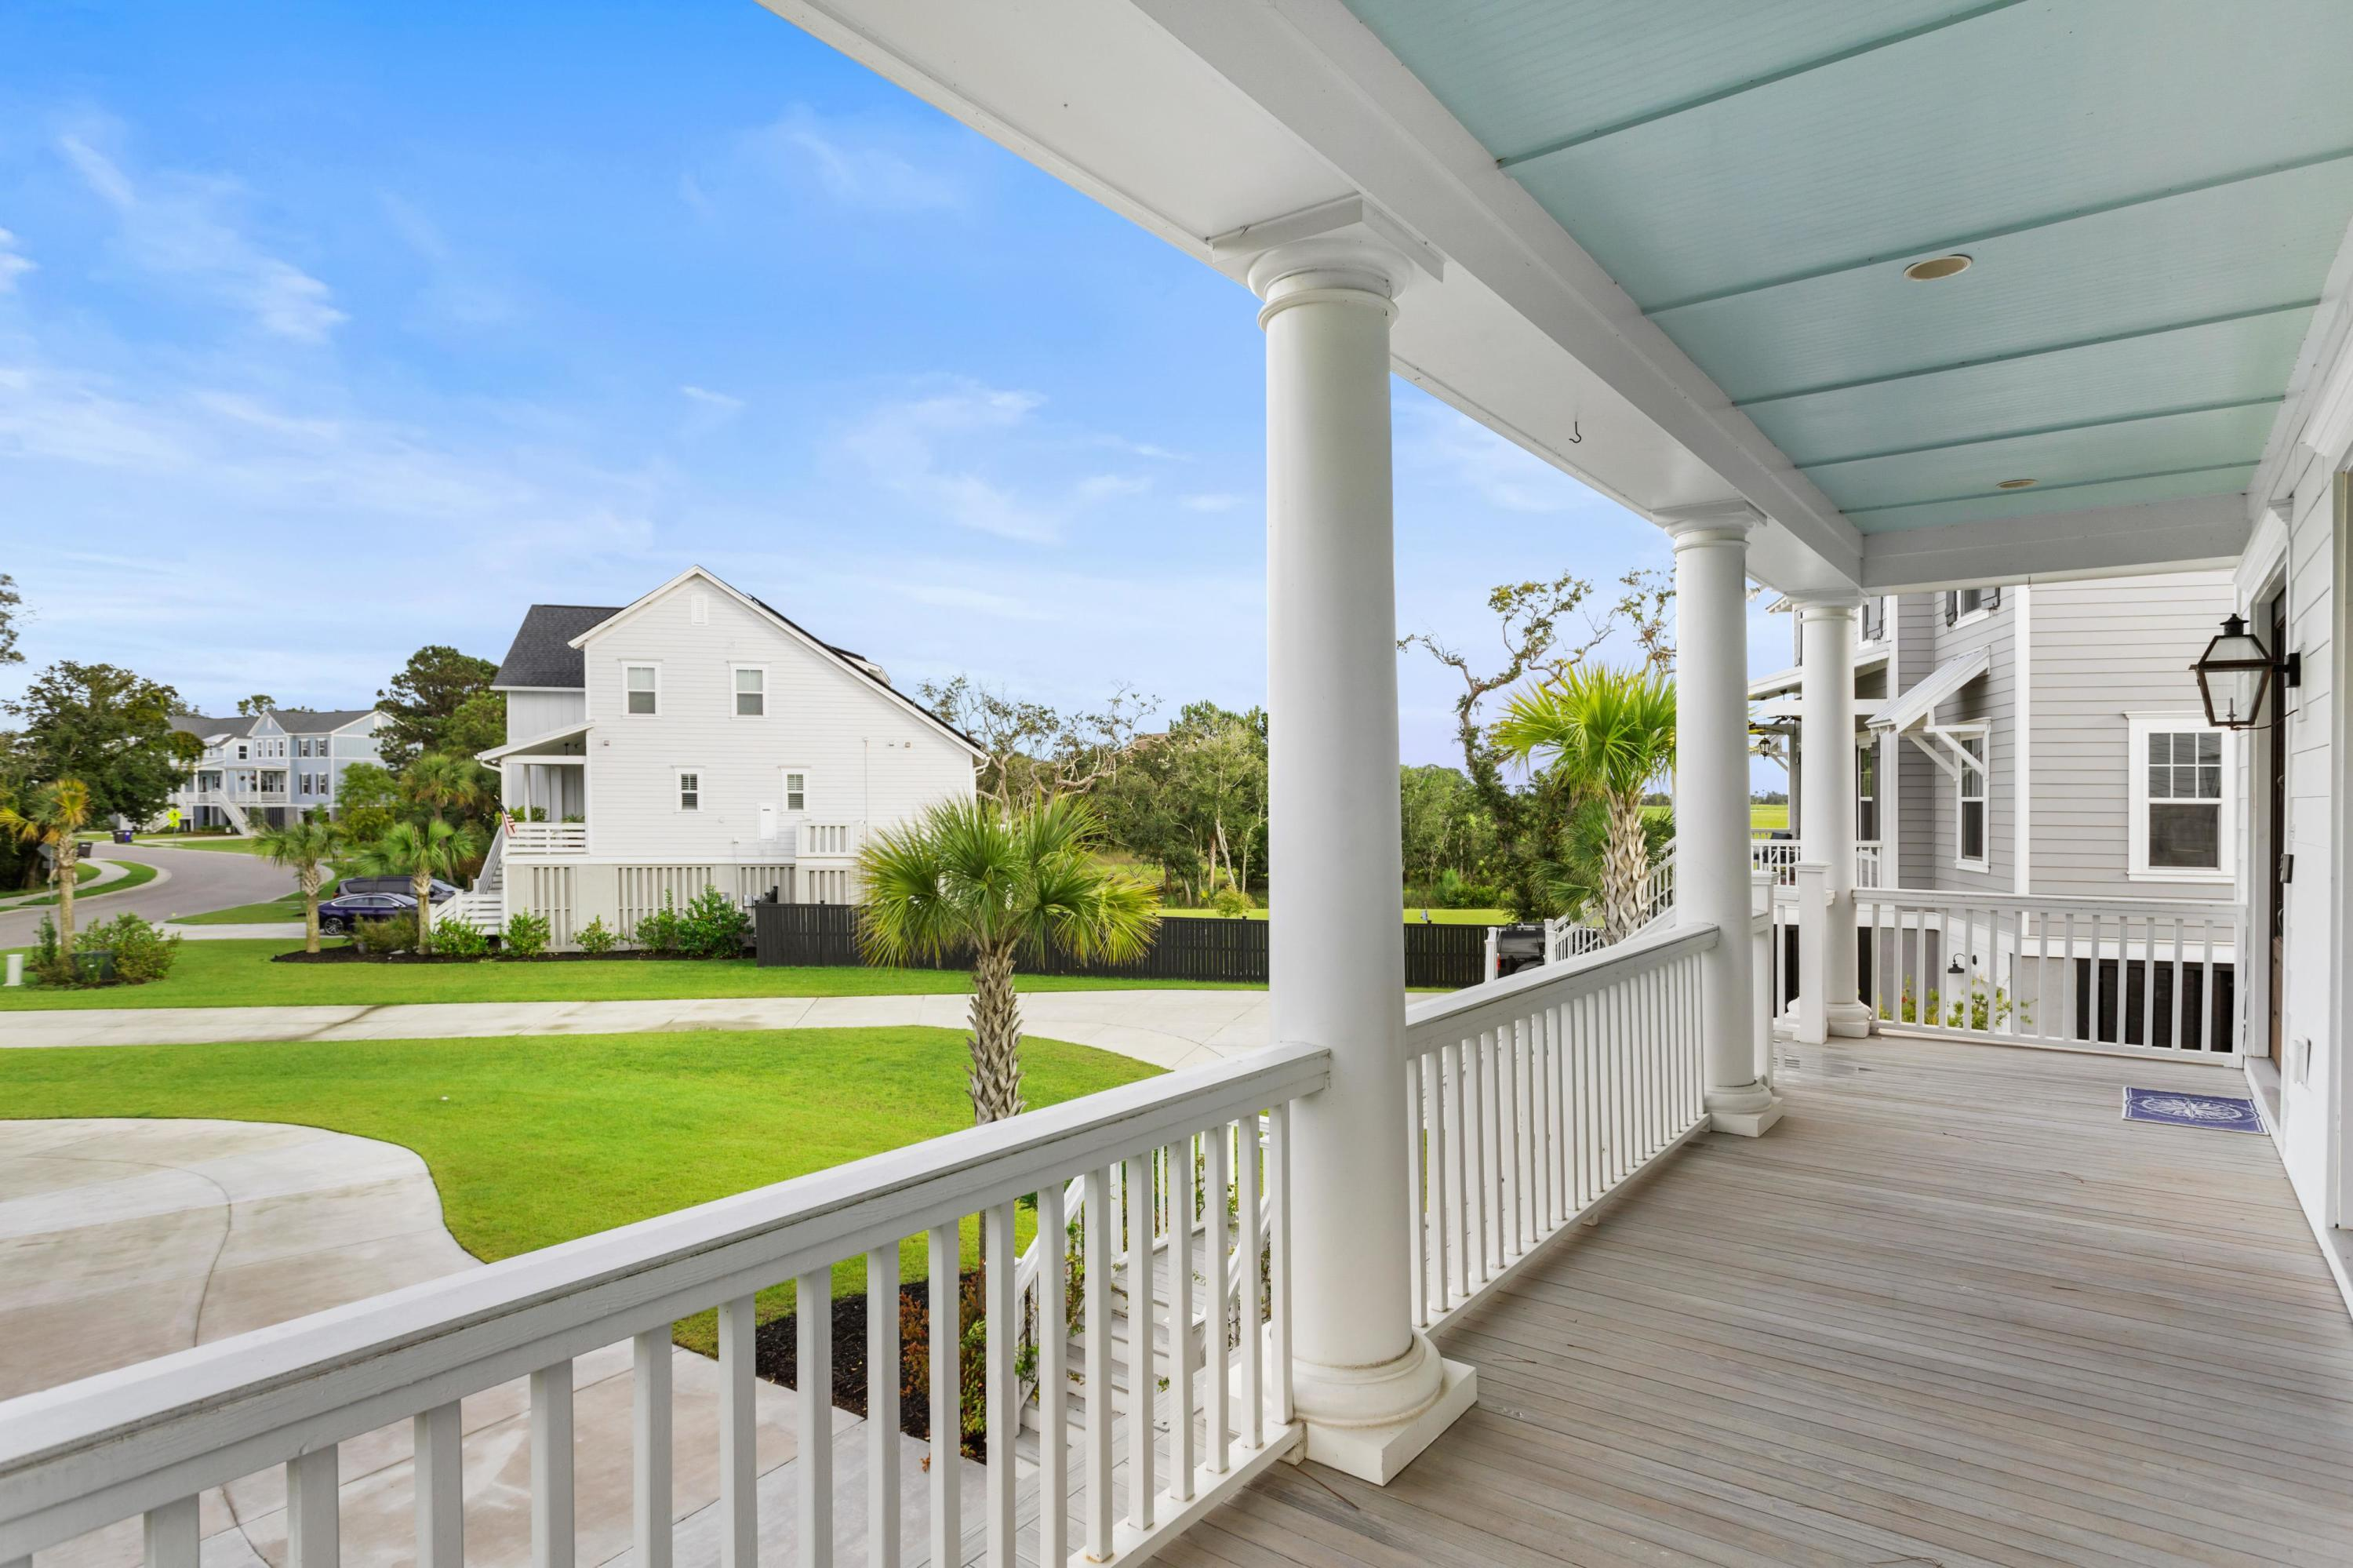 Stratton by the Sound Homes For Sale - 1400 Stratton, Mount Pleasant, SC - 38